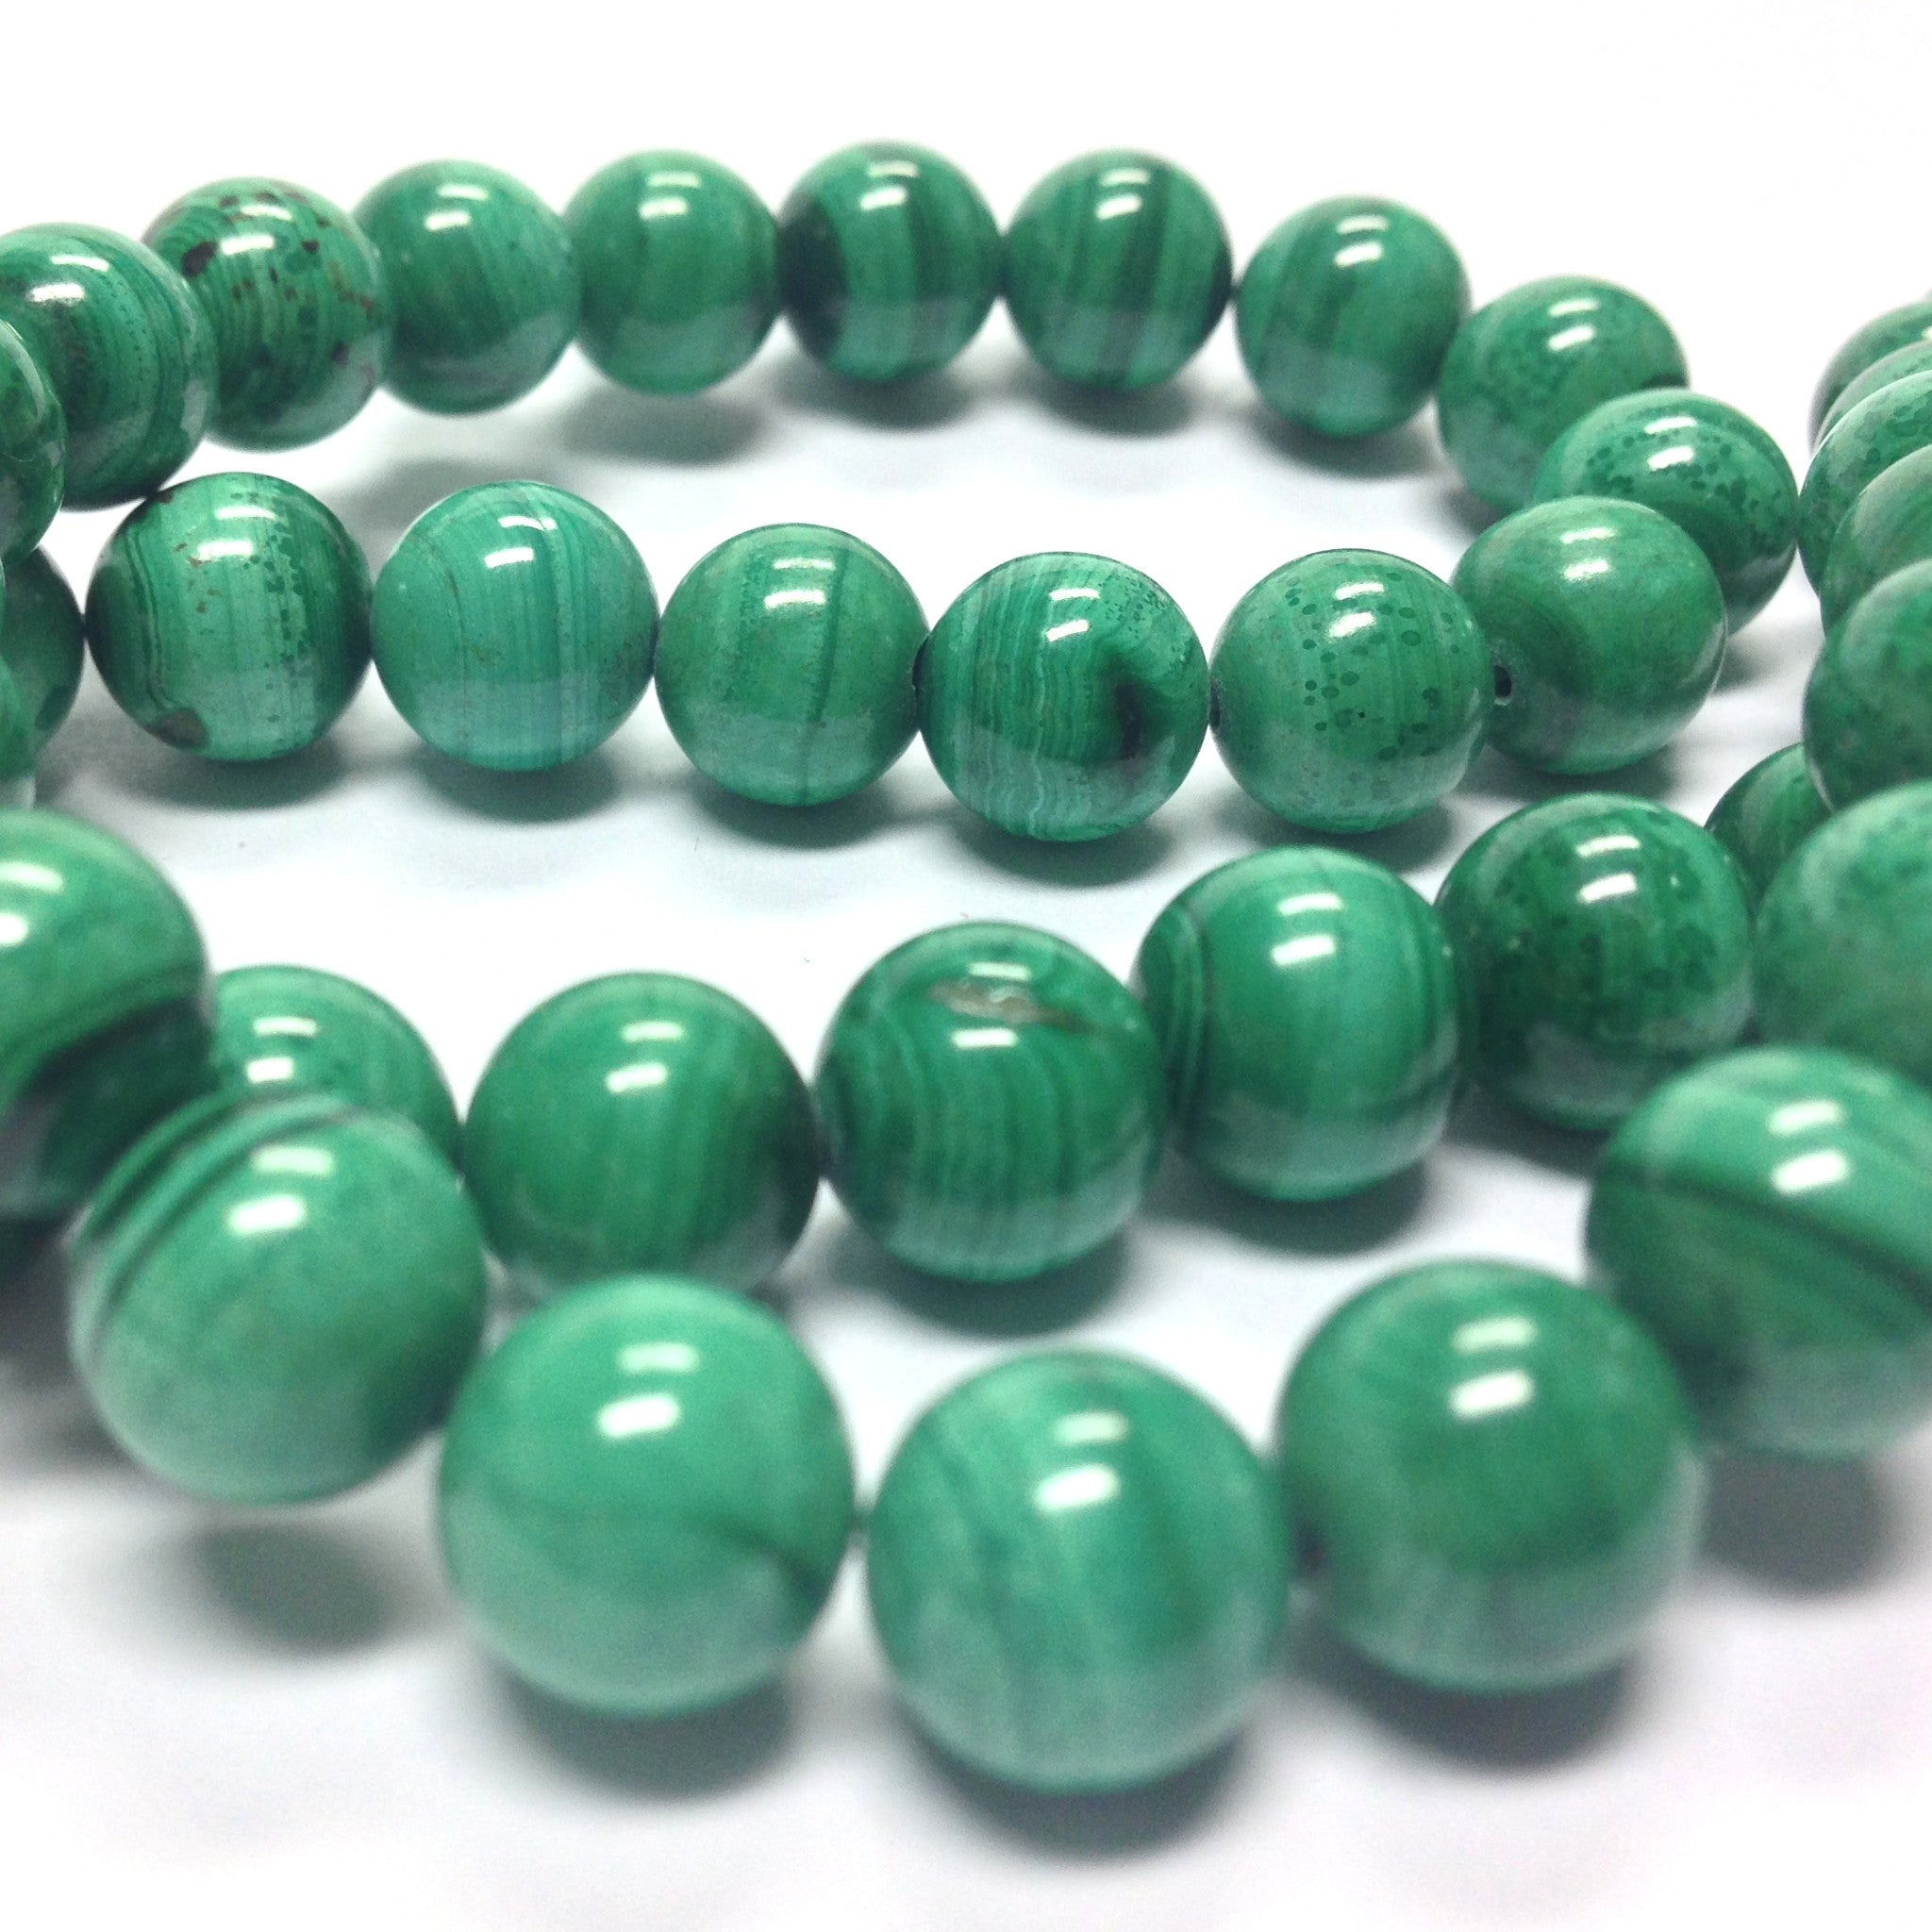 meditate jade shambhala p style novica cotton beads by crafted hand bracelet indian